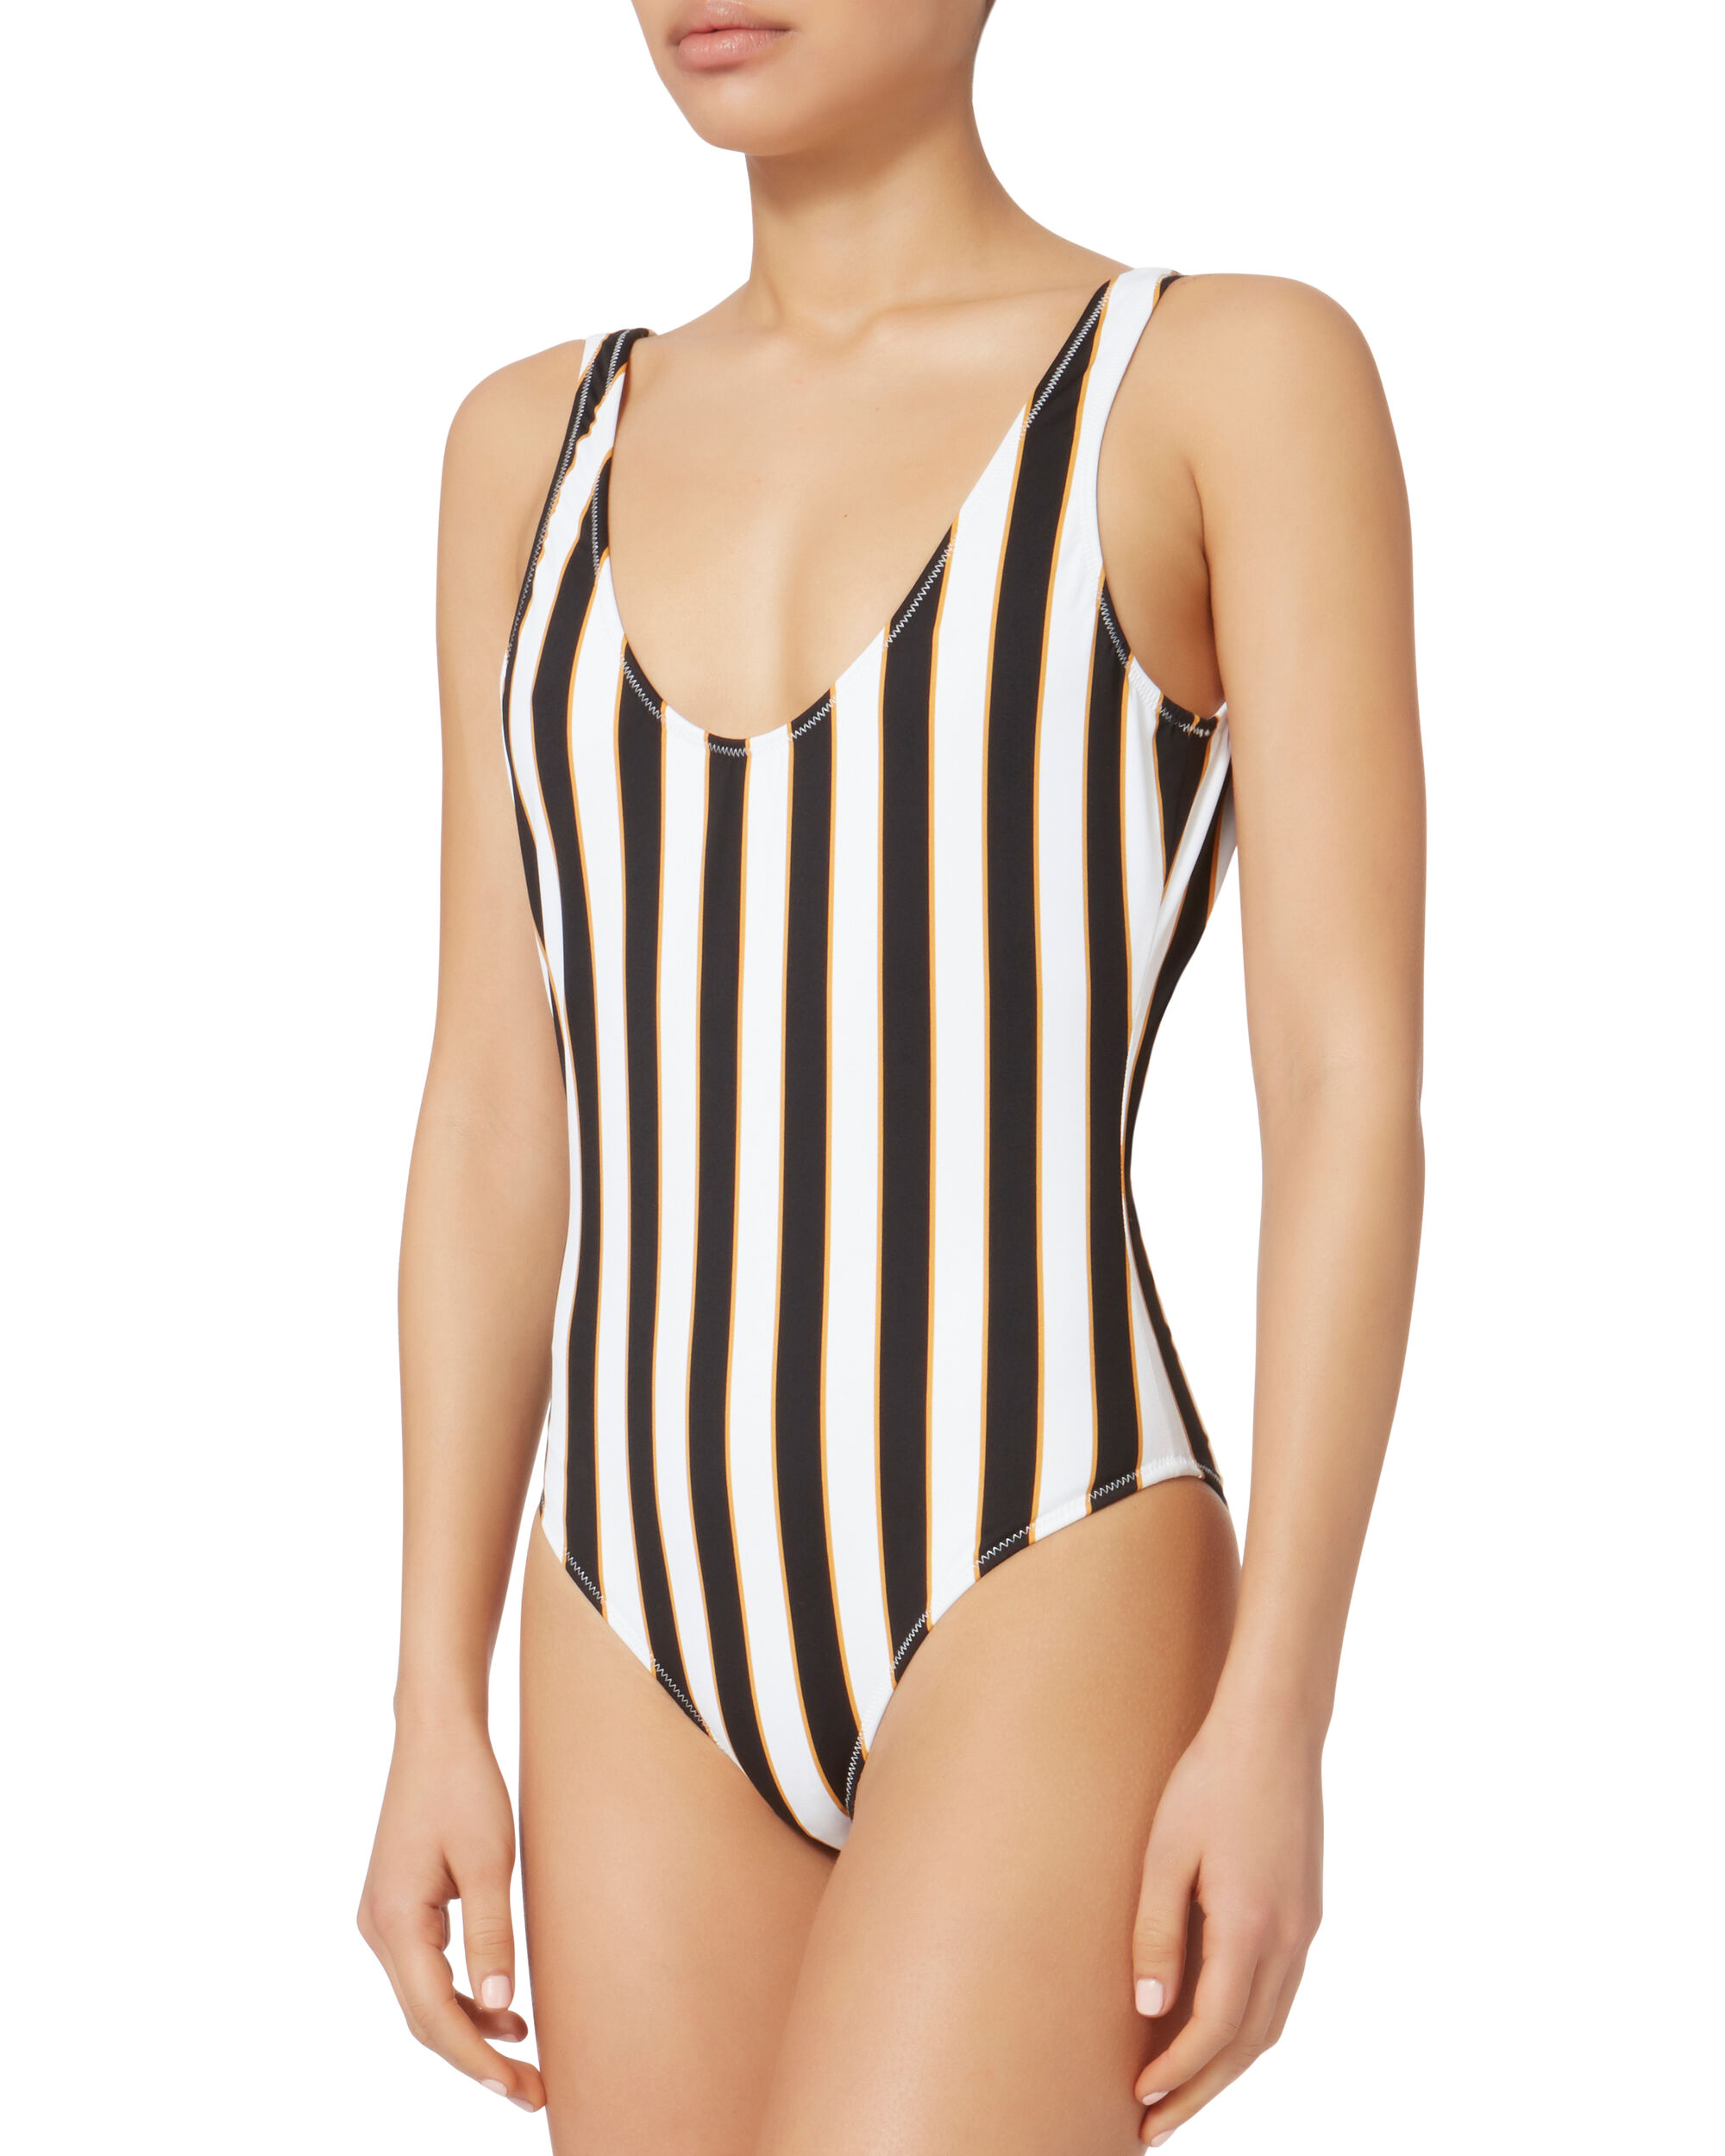 Aristi Scoop Back Striped One Piece Swimsuit, PATTERN, hi-res